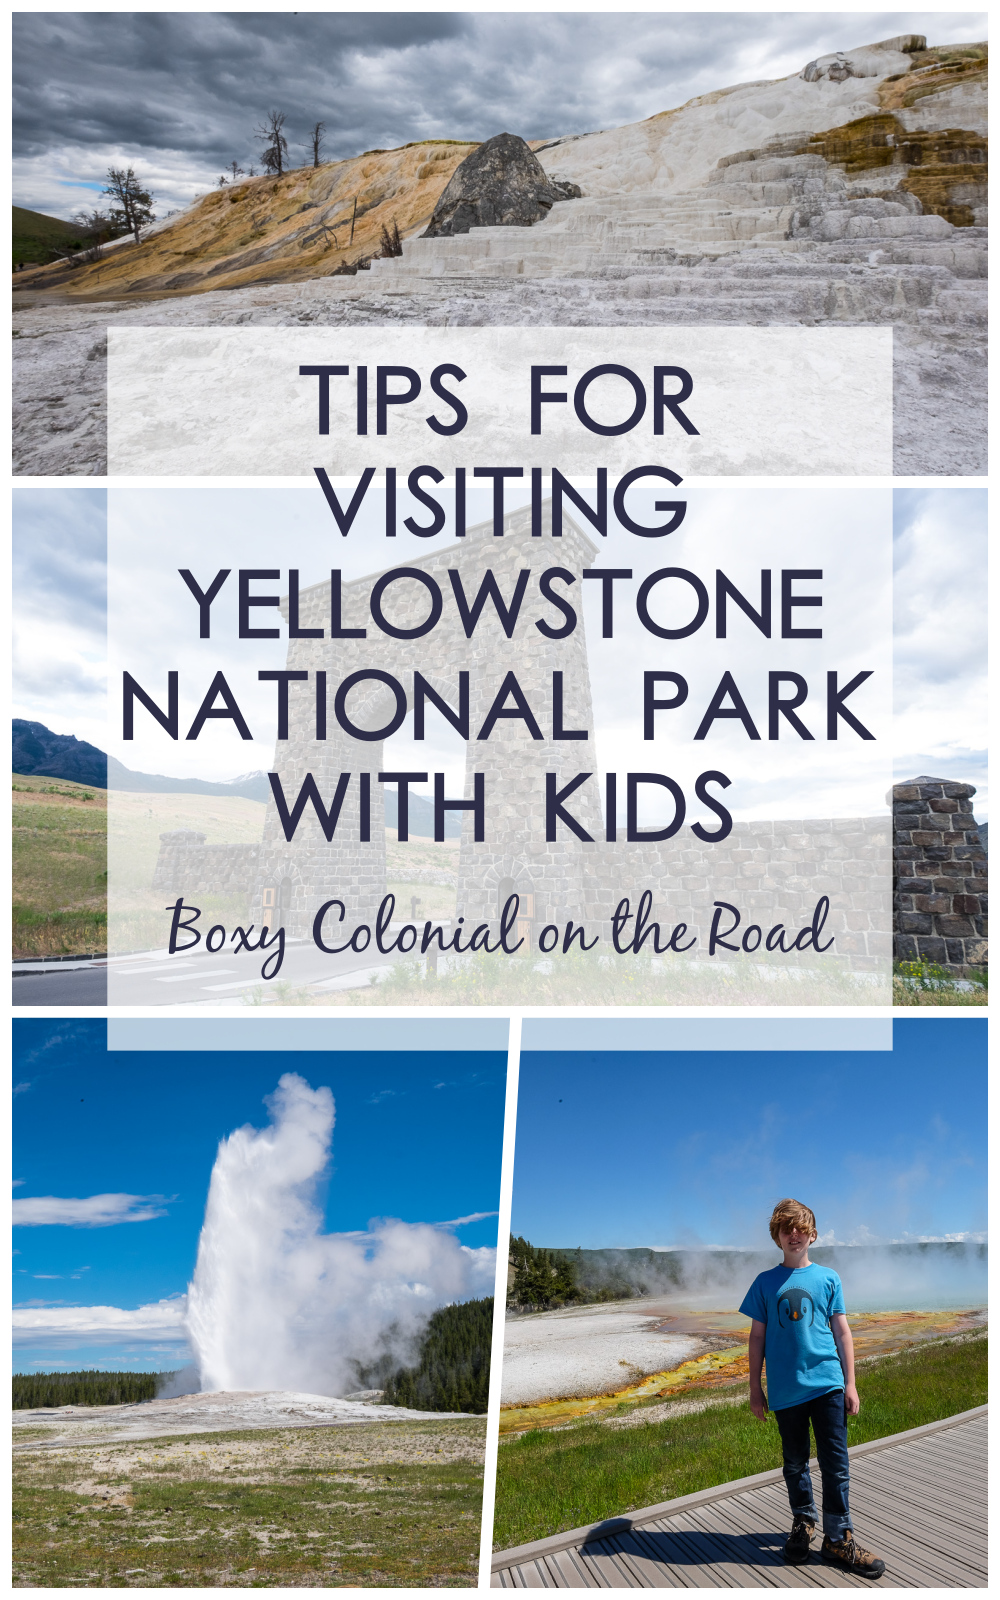 visiting Yellowstone National park with kids: Old Faithful, Midway Geyser Basin, Upper Geyser Basin, Grand Prismatic Spring, Roosevelt Arch, Mammoth Hot Springs